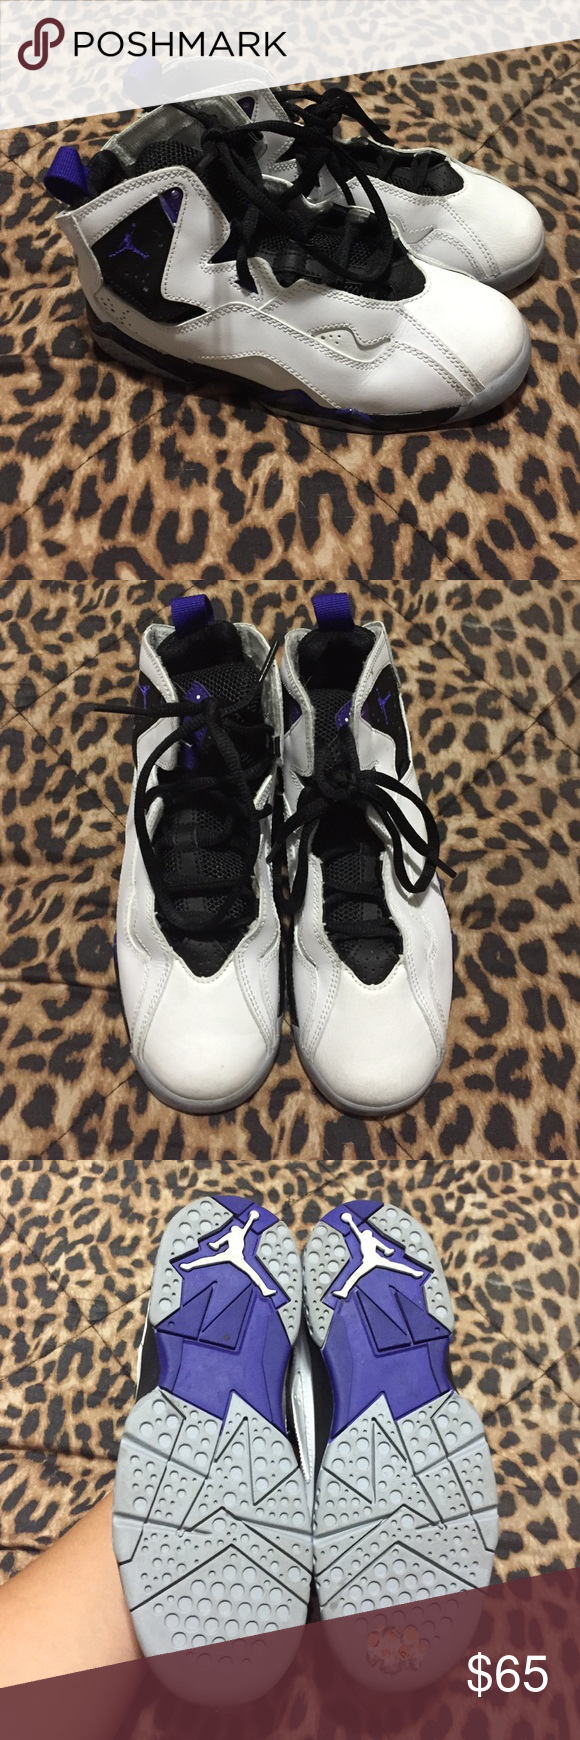 Jordans sneakers Retro's Like new. Very good condition. Worn twice. Jordan Shoes Sneakers